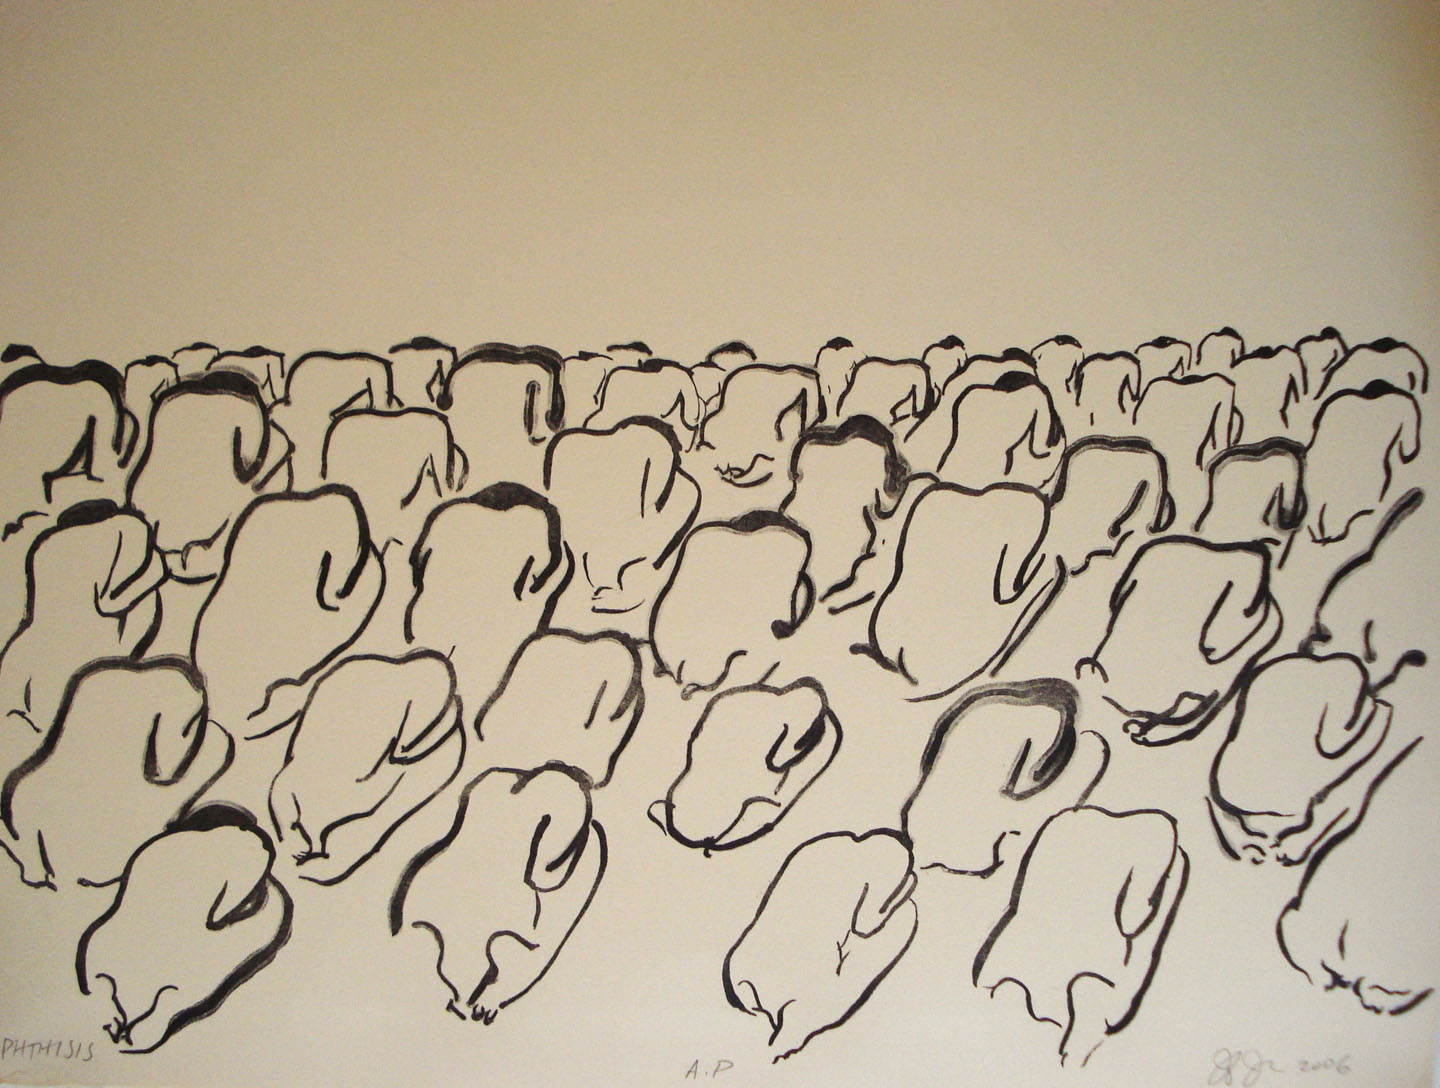 Chen, Jennifer J-Lithography- Phthisis 2006, 15x18in.jpg